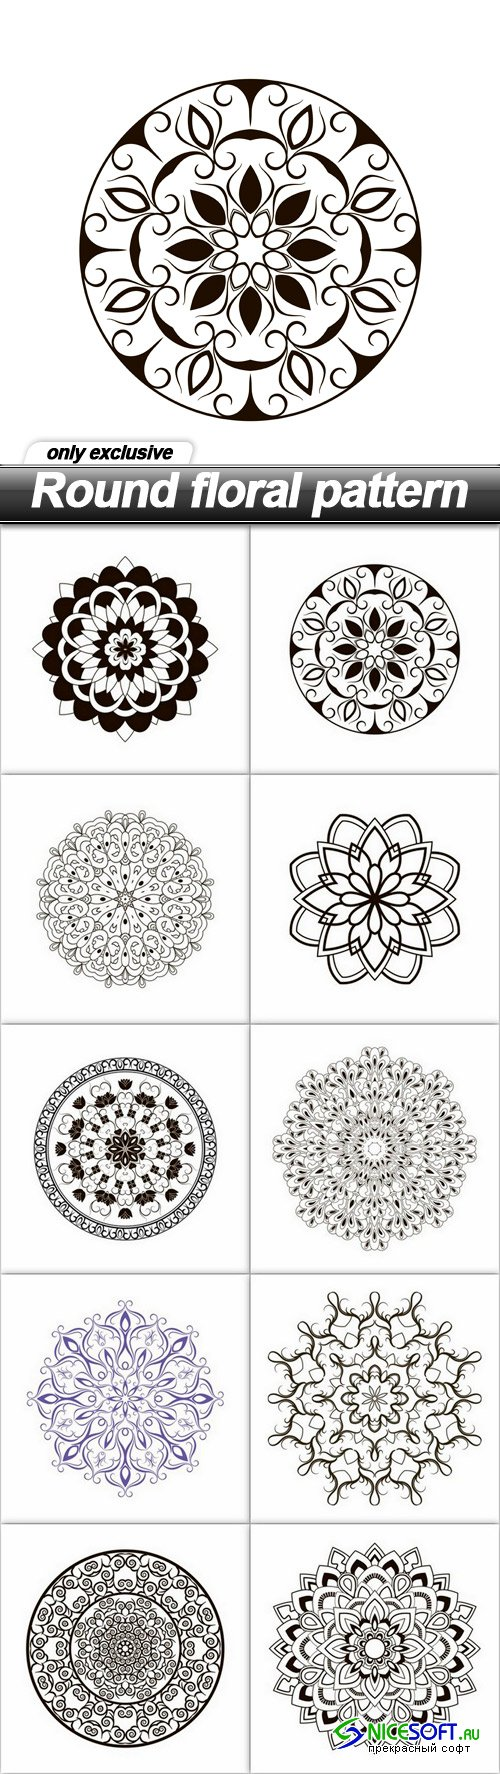 Round floral pattern - 10 EPS